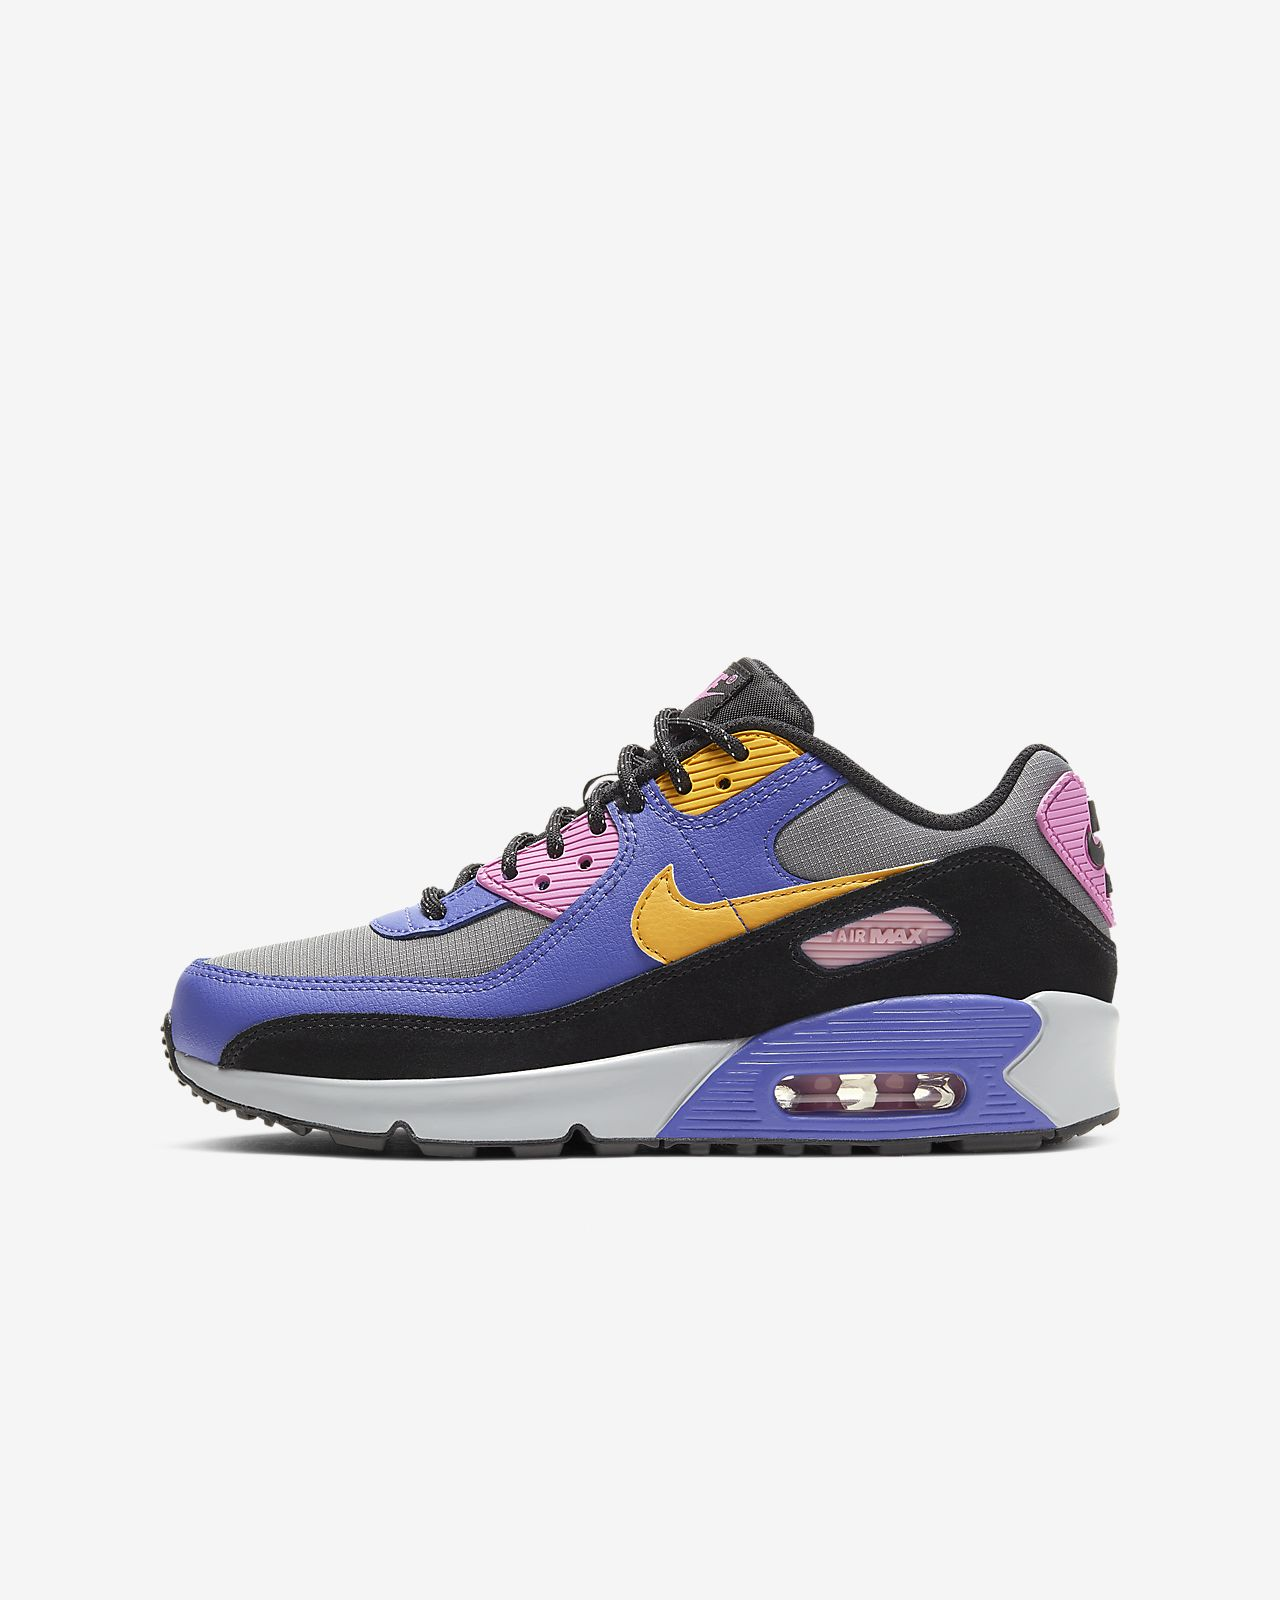 Nike Air Max 90 QS (GS) 大童运动童鞋